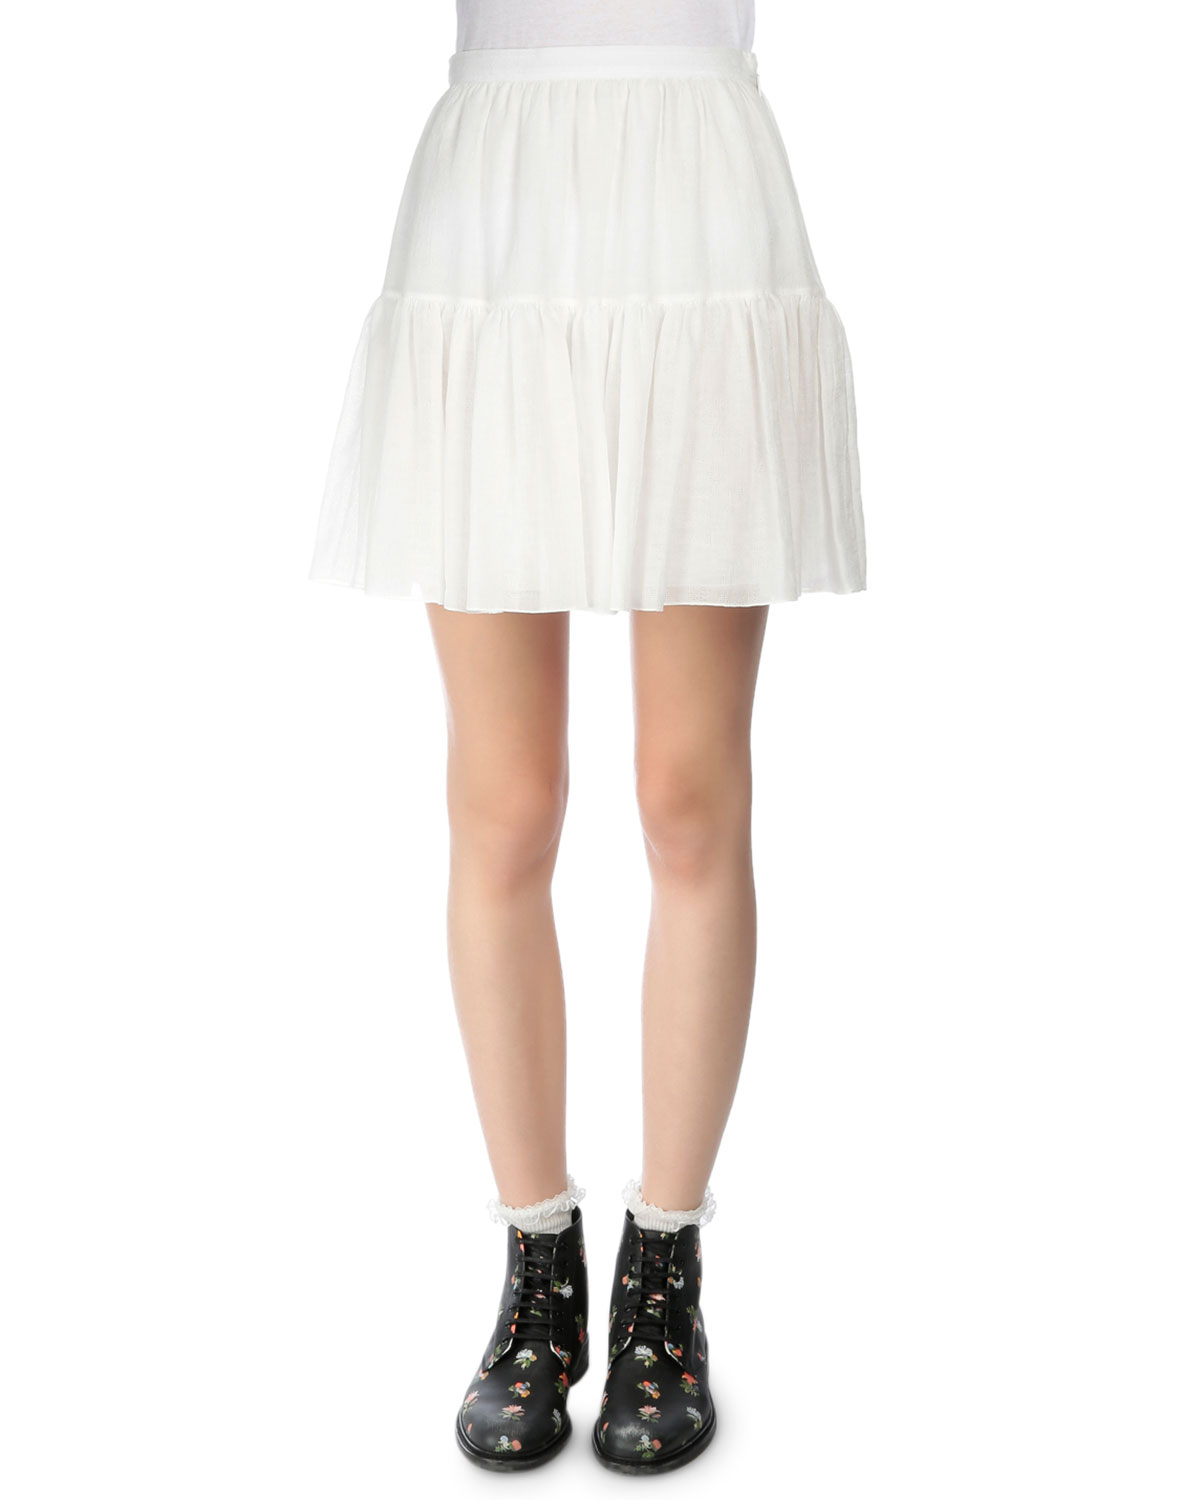 Tiered Full Mini Skirt